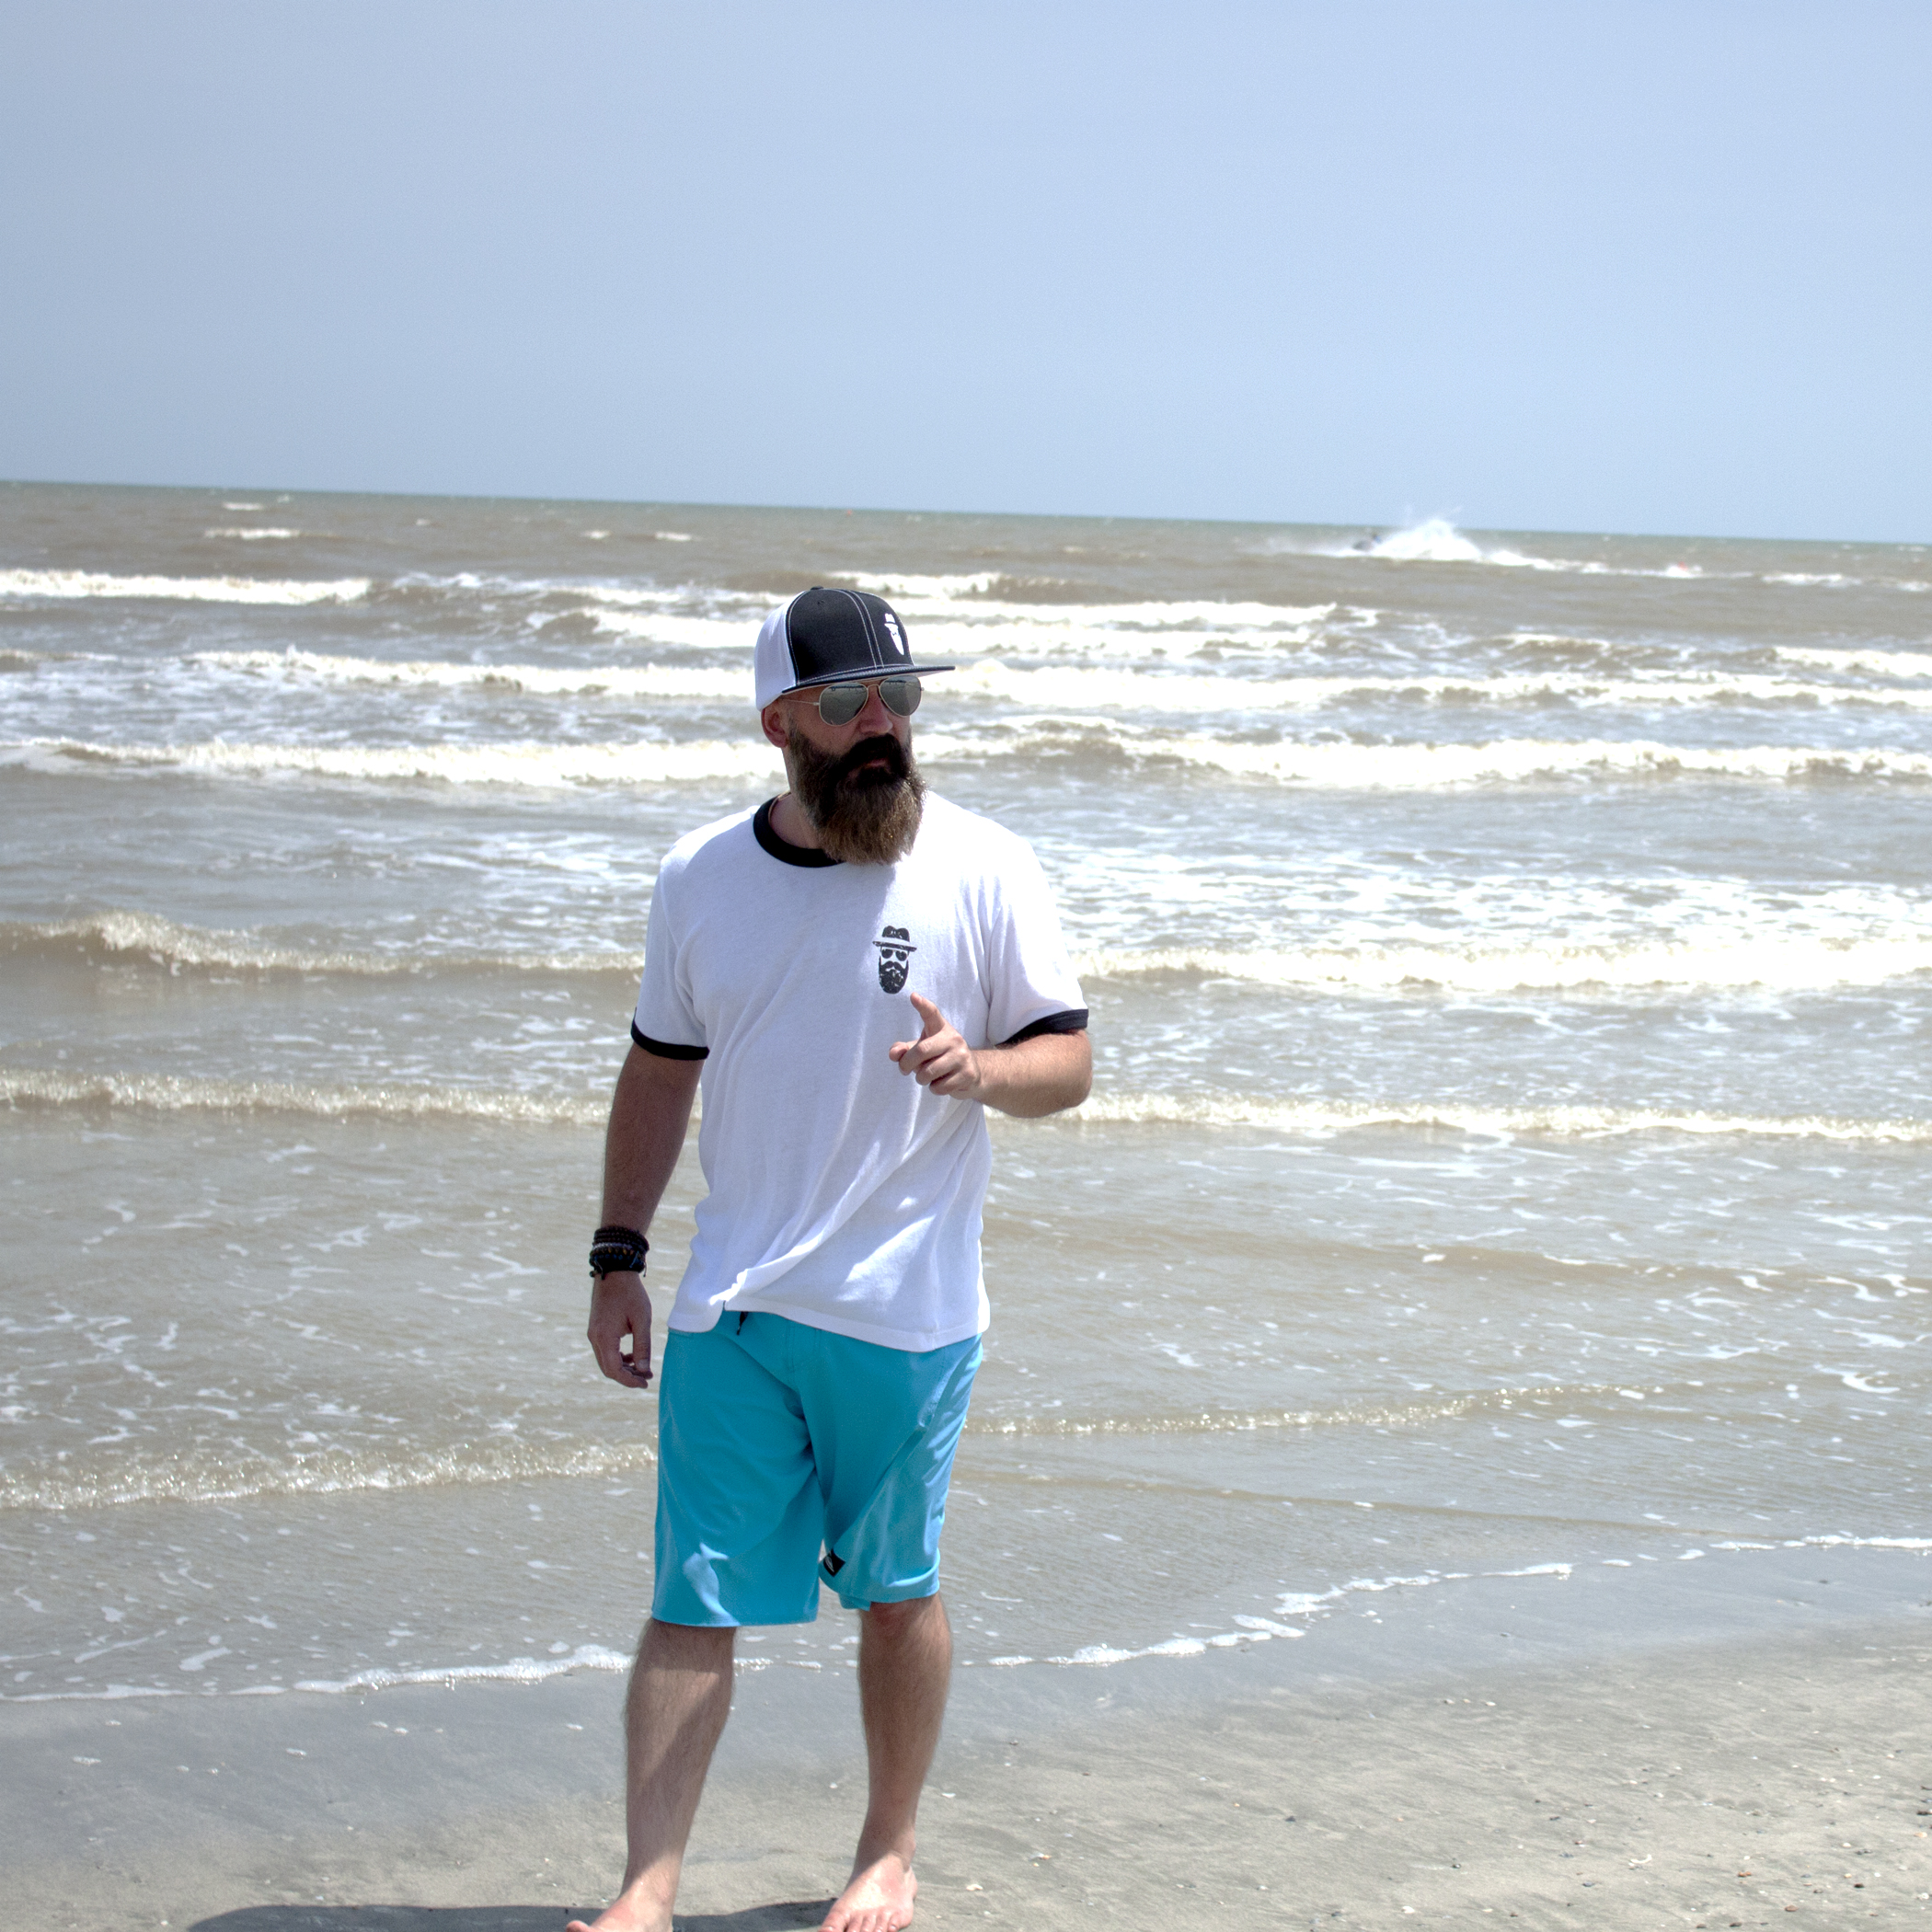 Clay sporting the CD Island Vintage Ringer Tee and the Beard On FlexFit Hat by Pacific Headwear at Galveston Beach.